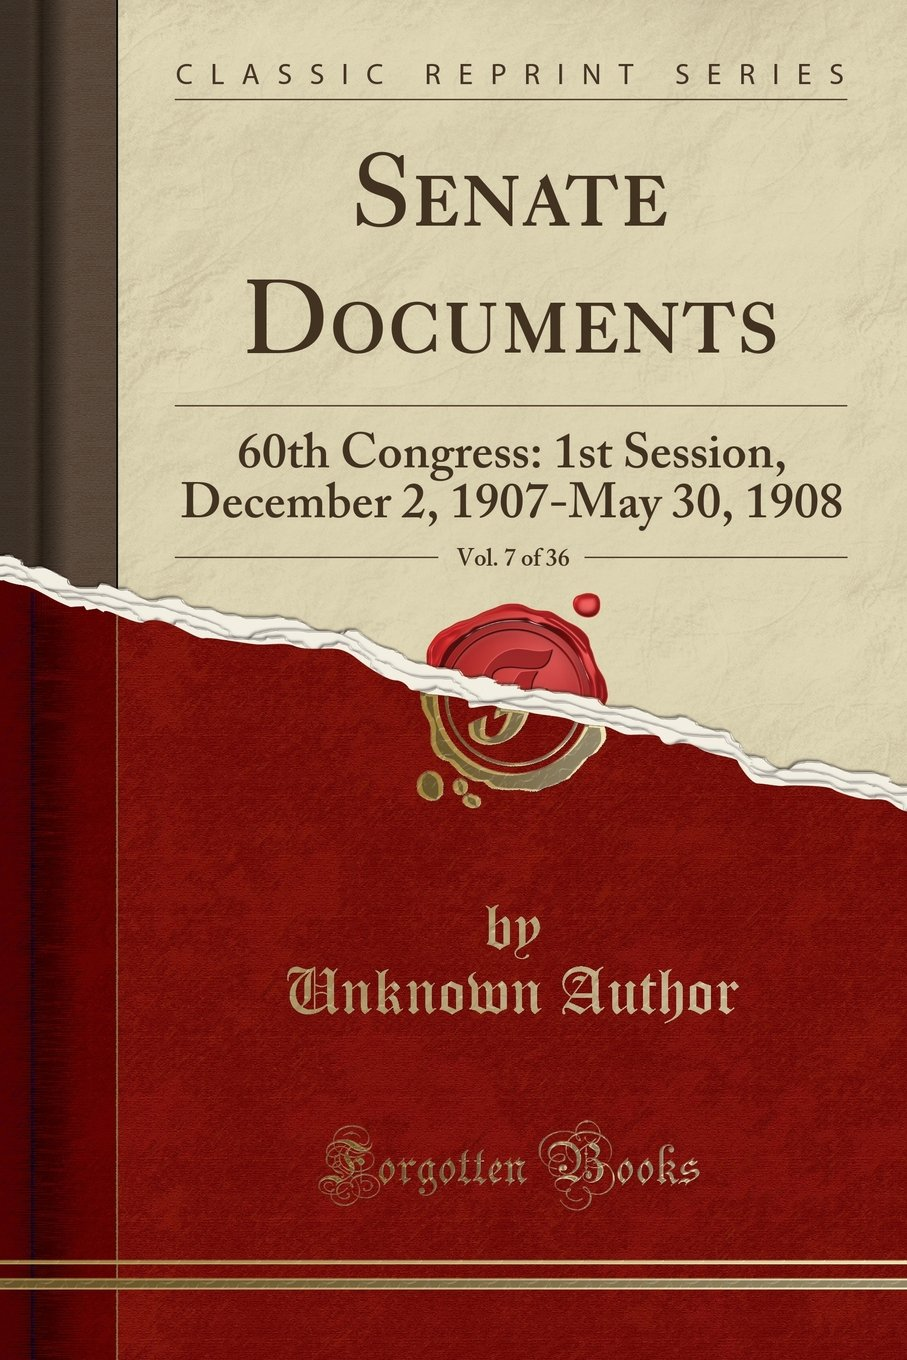 Download Senate Documents, Vol. 7 of 36: 60th Congress: 1st Session, December 2, 1907-May 30, 1908 (Classic Reprint) ebook